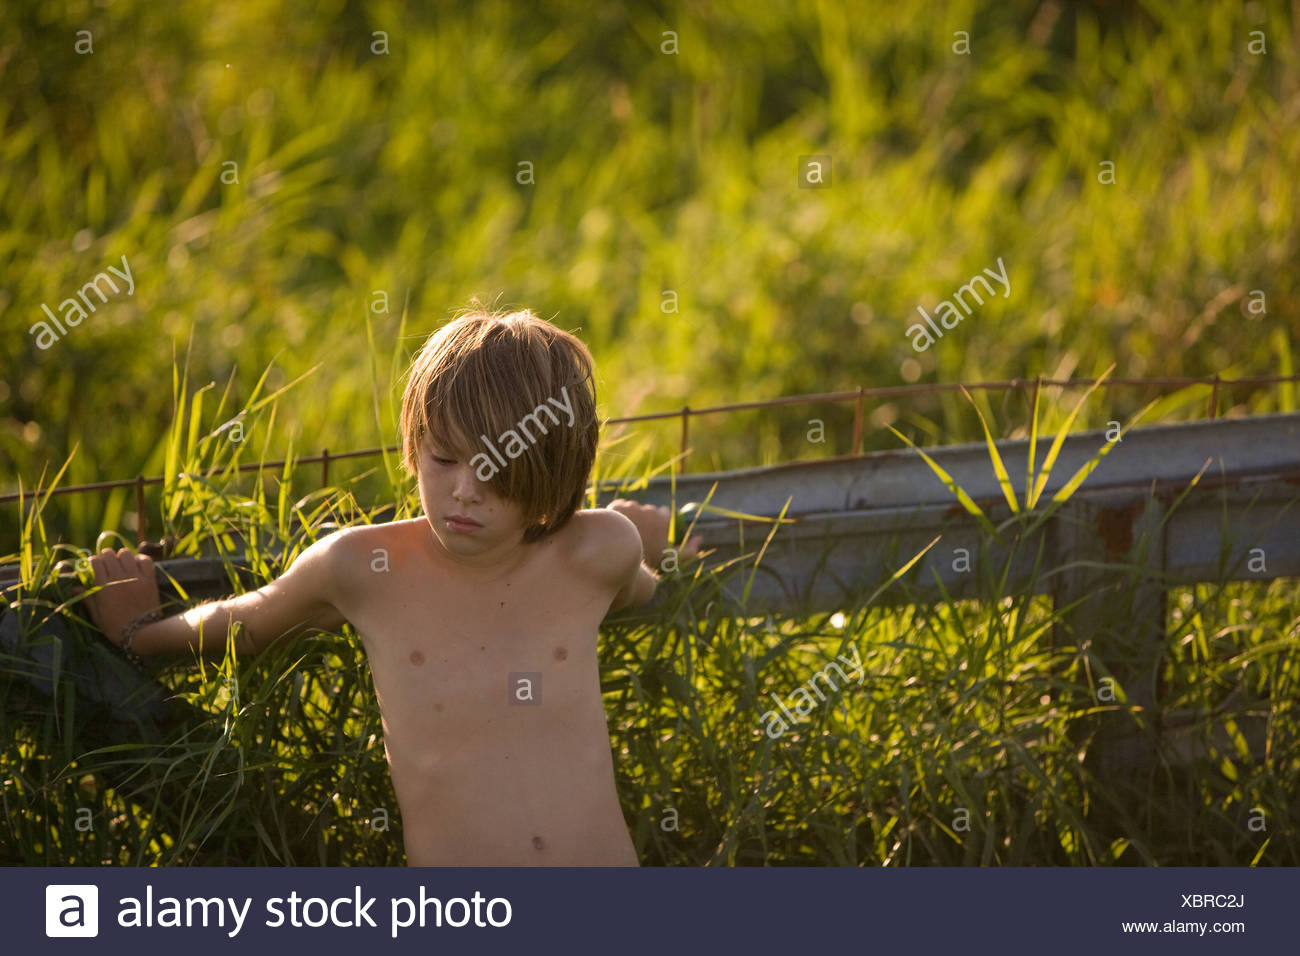 Boy leaning on fence in field - Stock Image